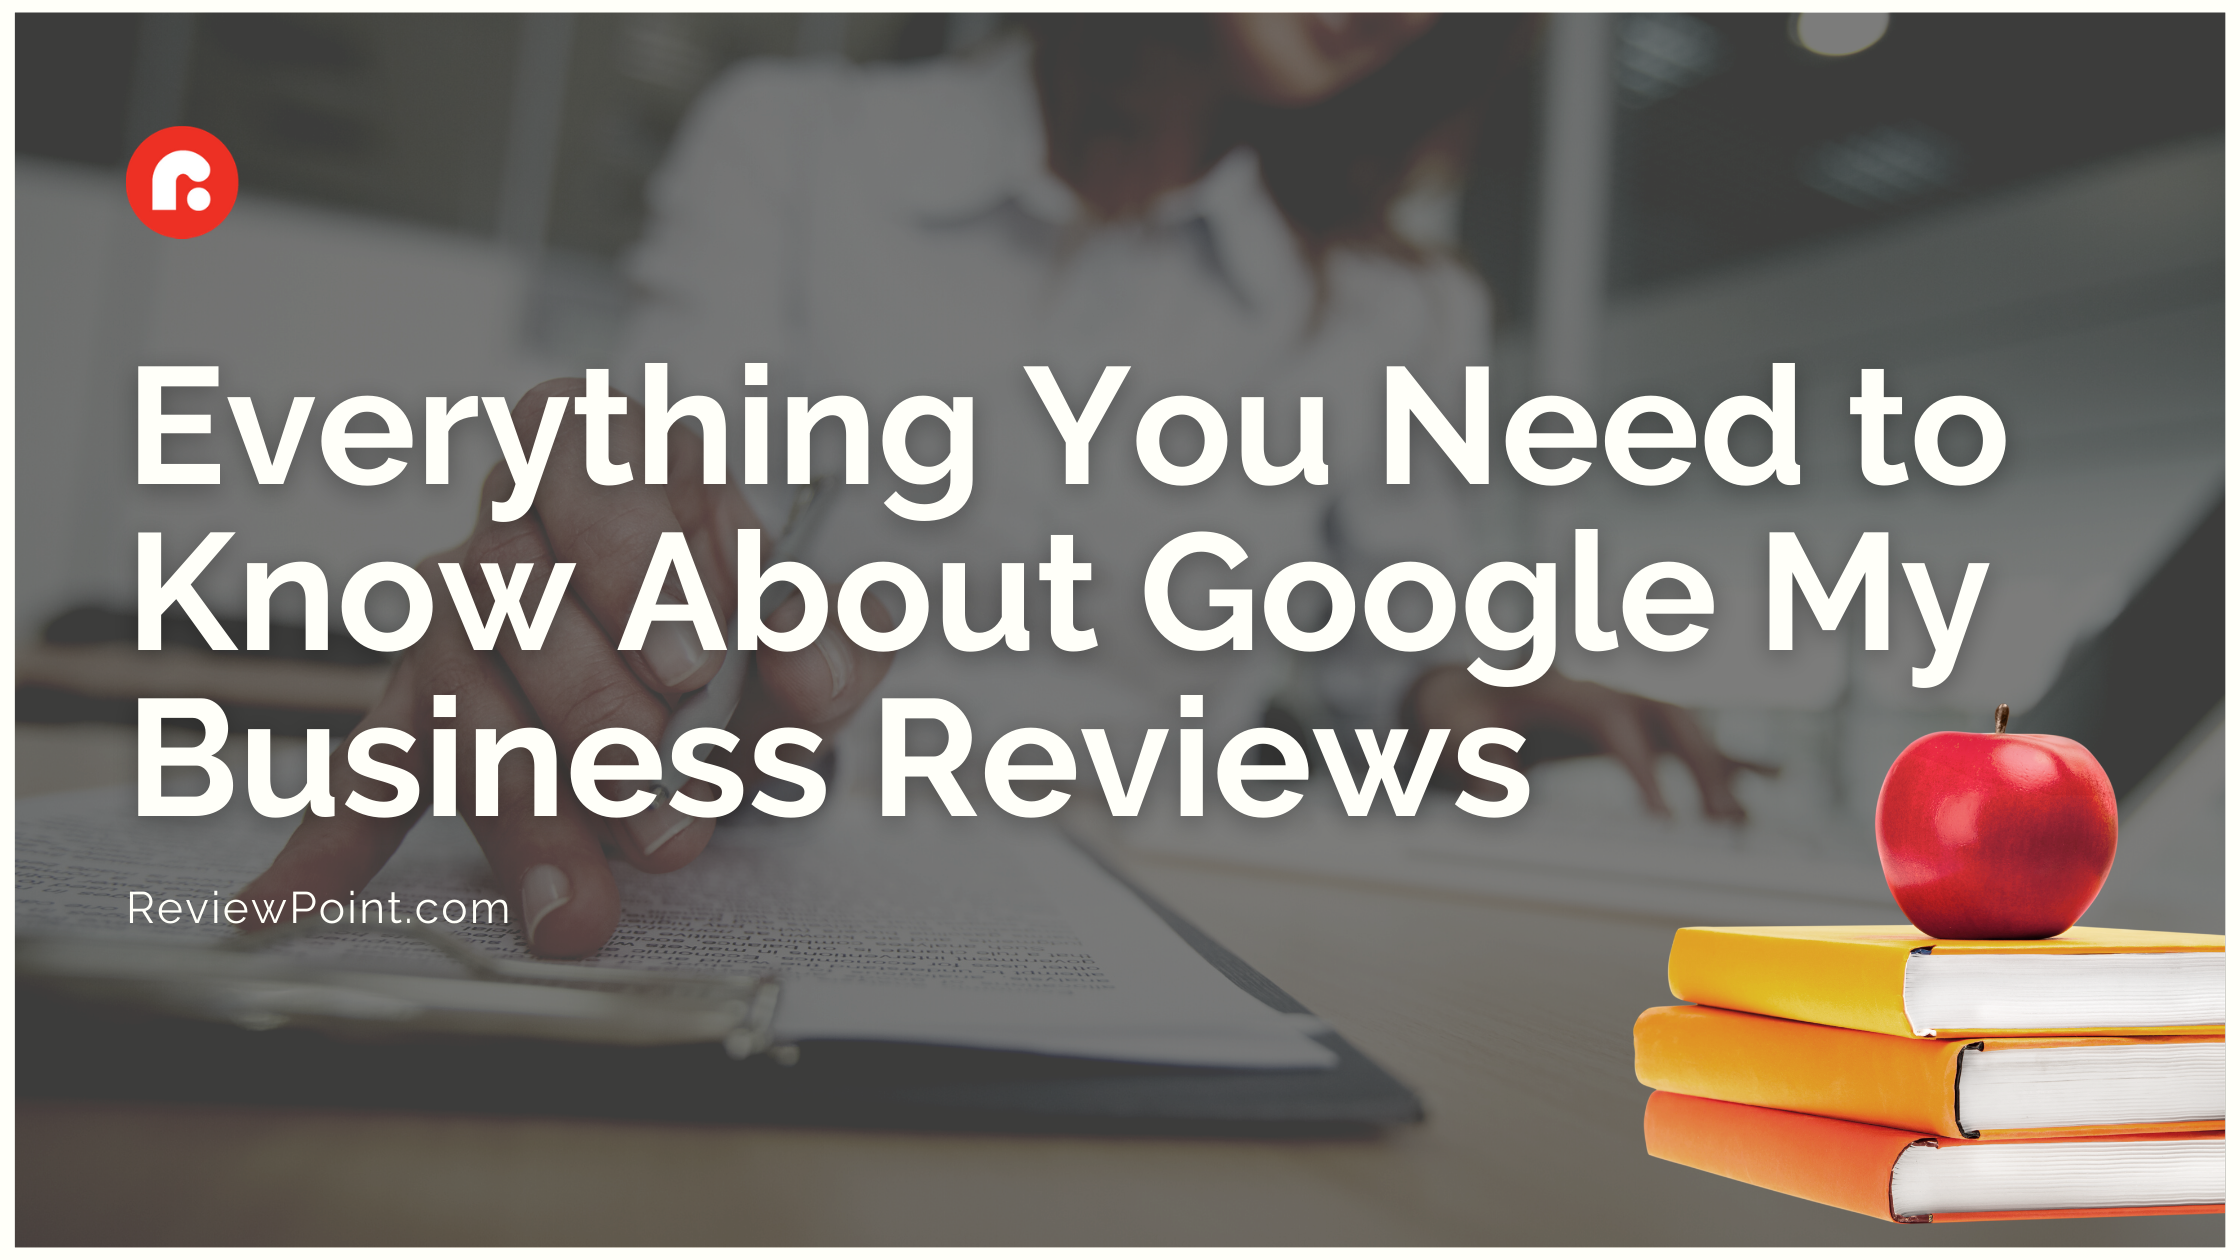 Everything You Need to Know About Google My Business Reviews